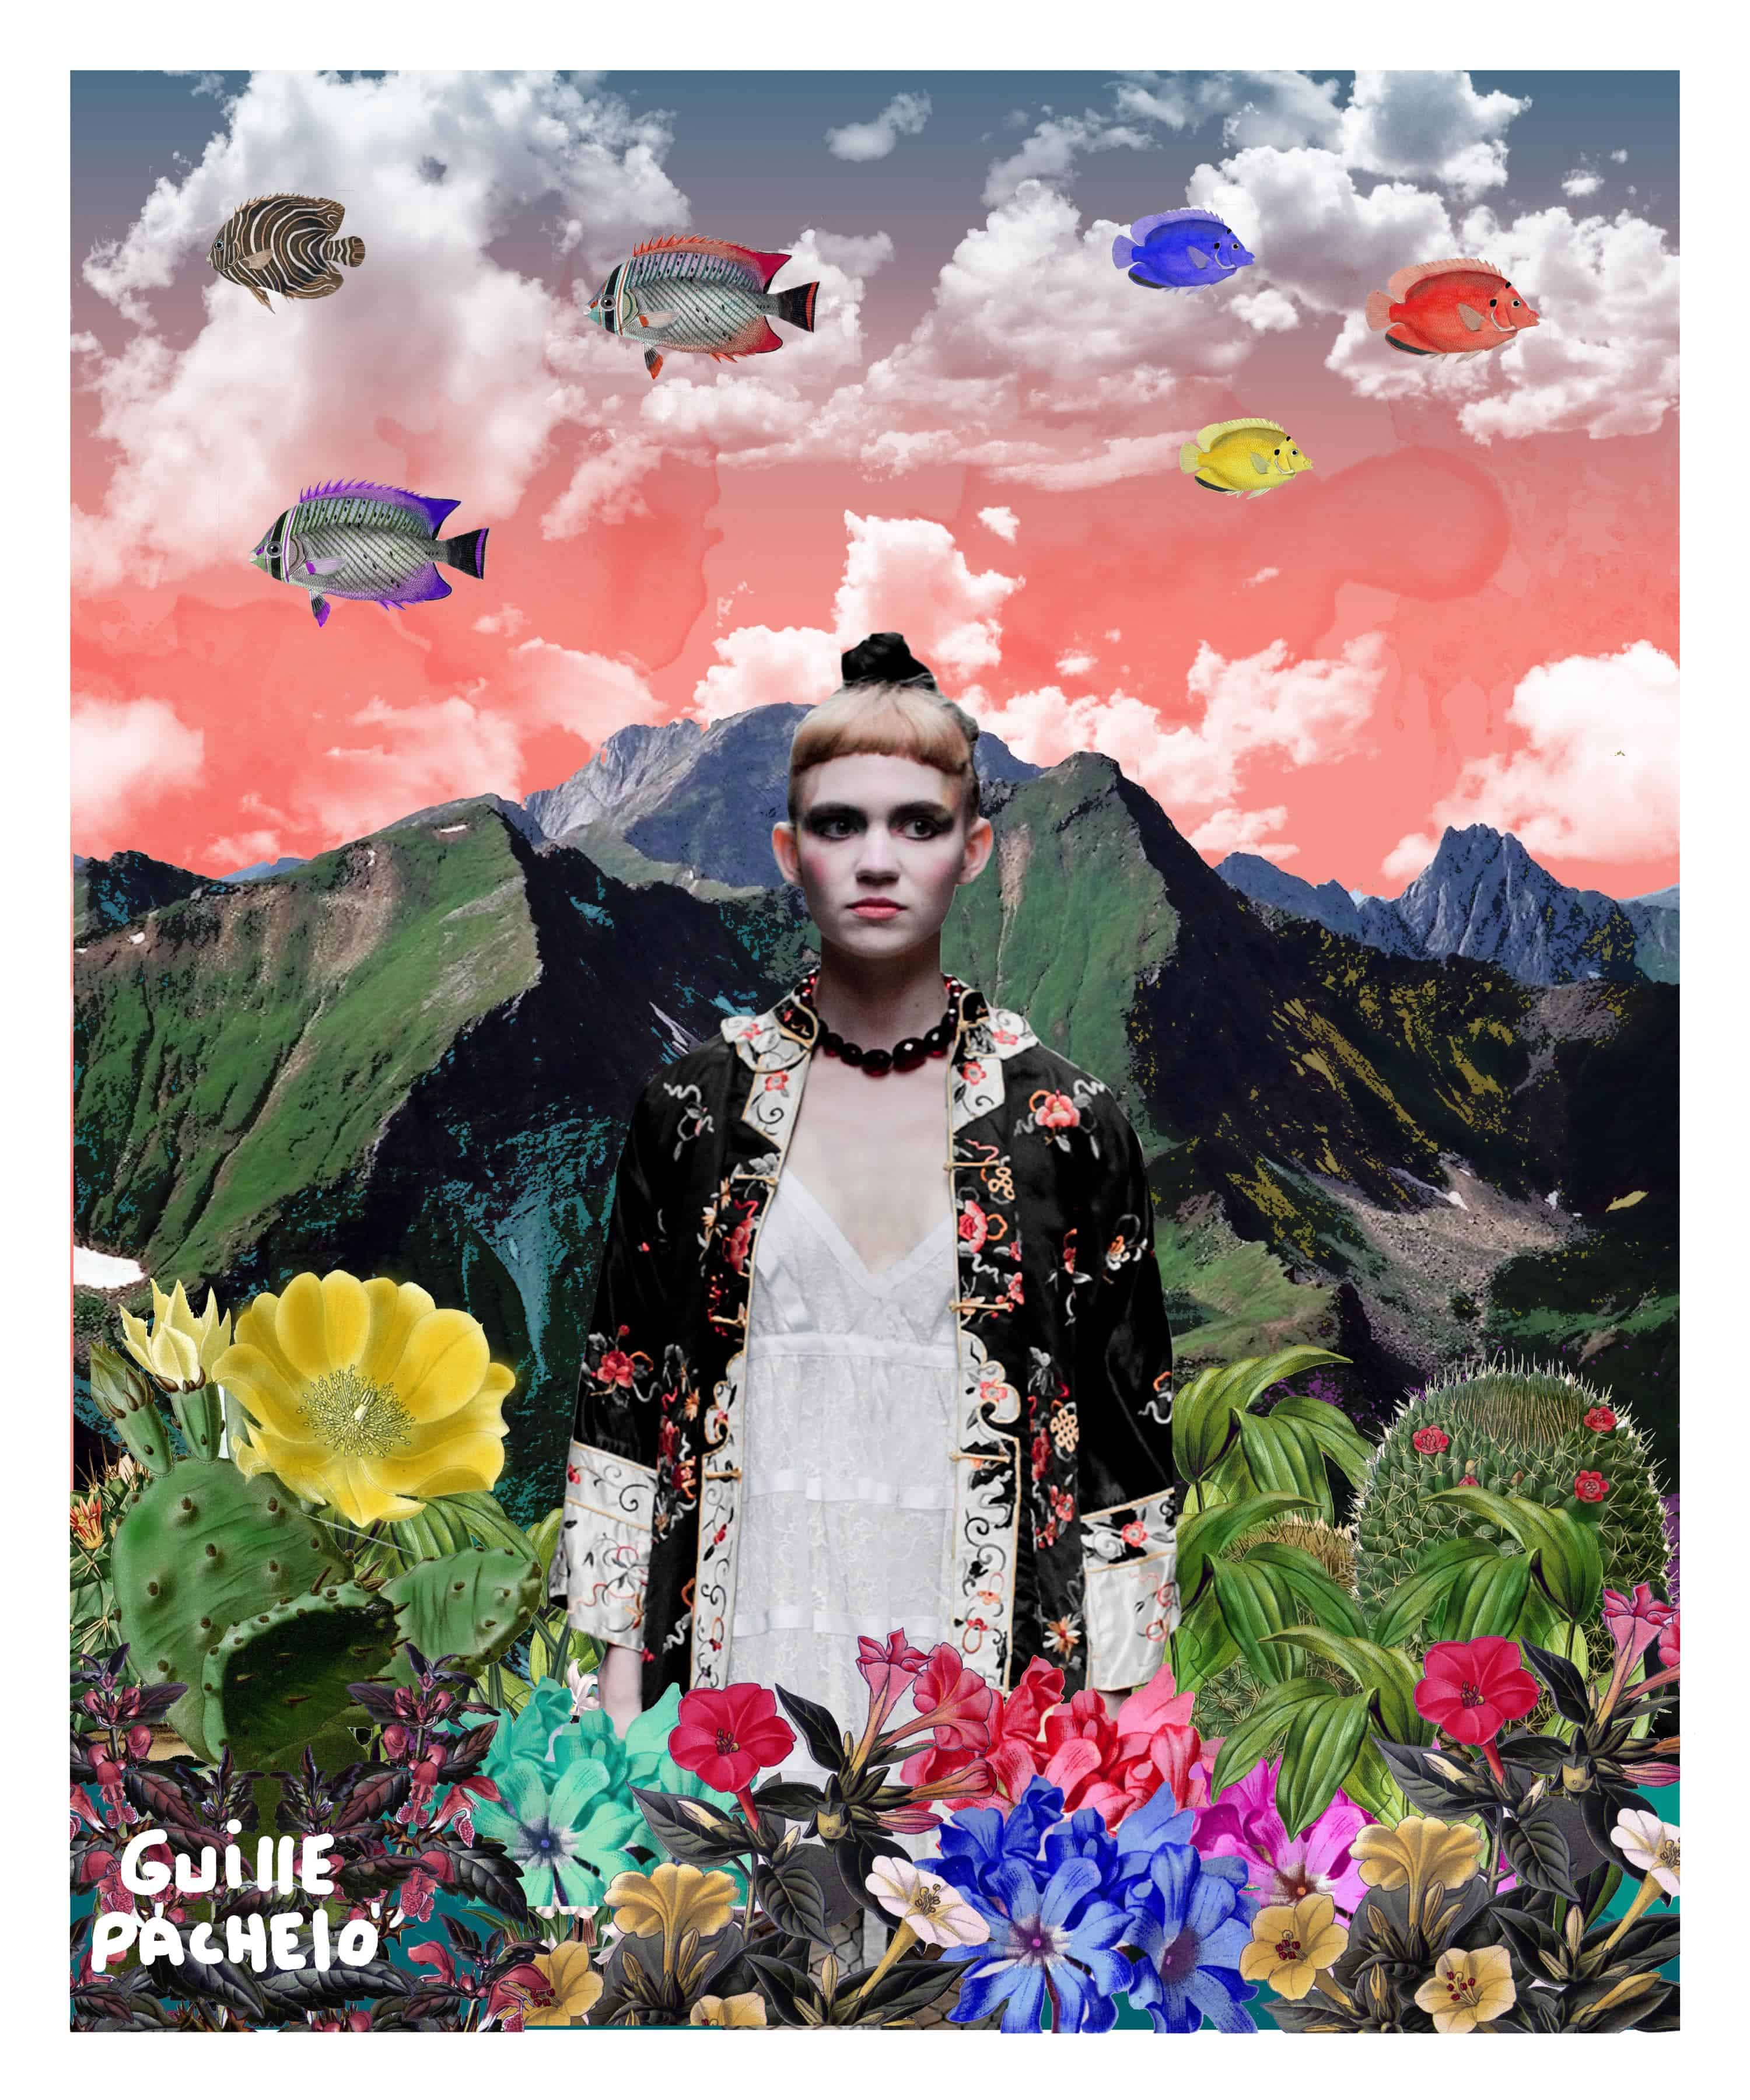 Example of digital collage art